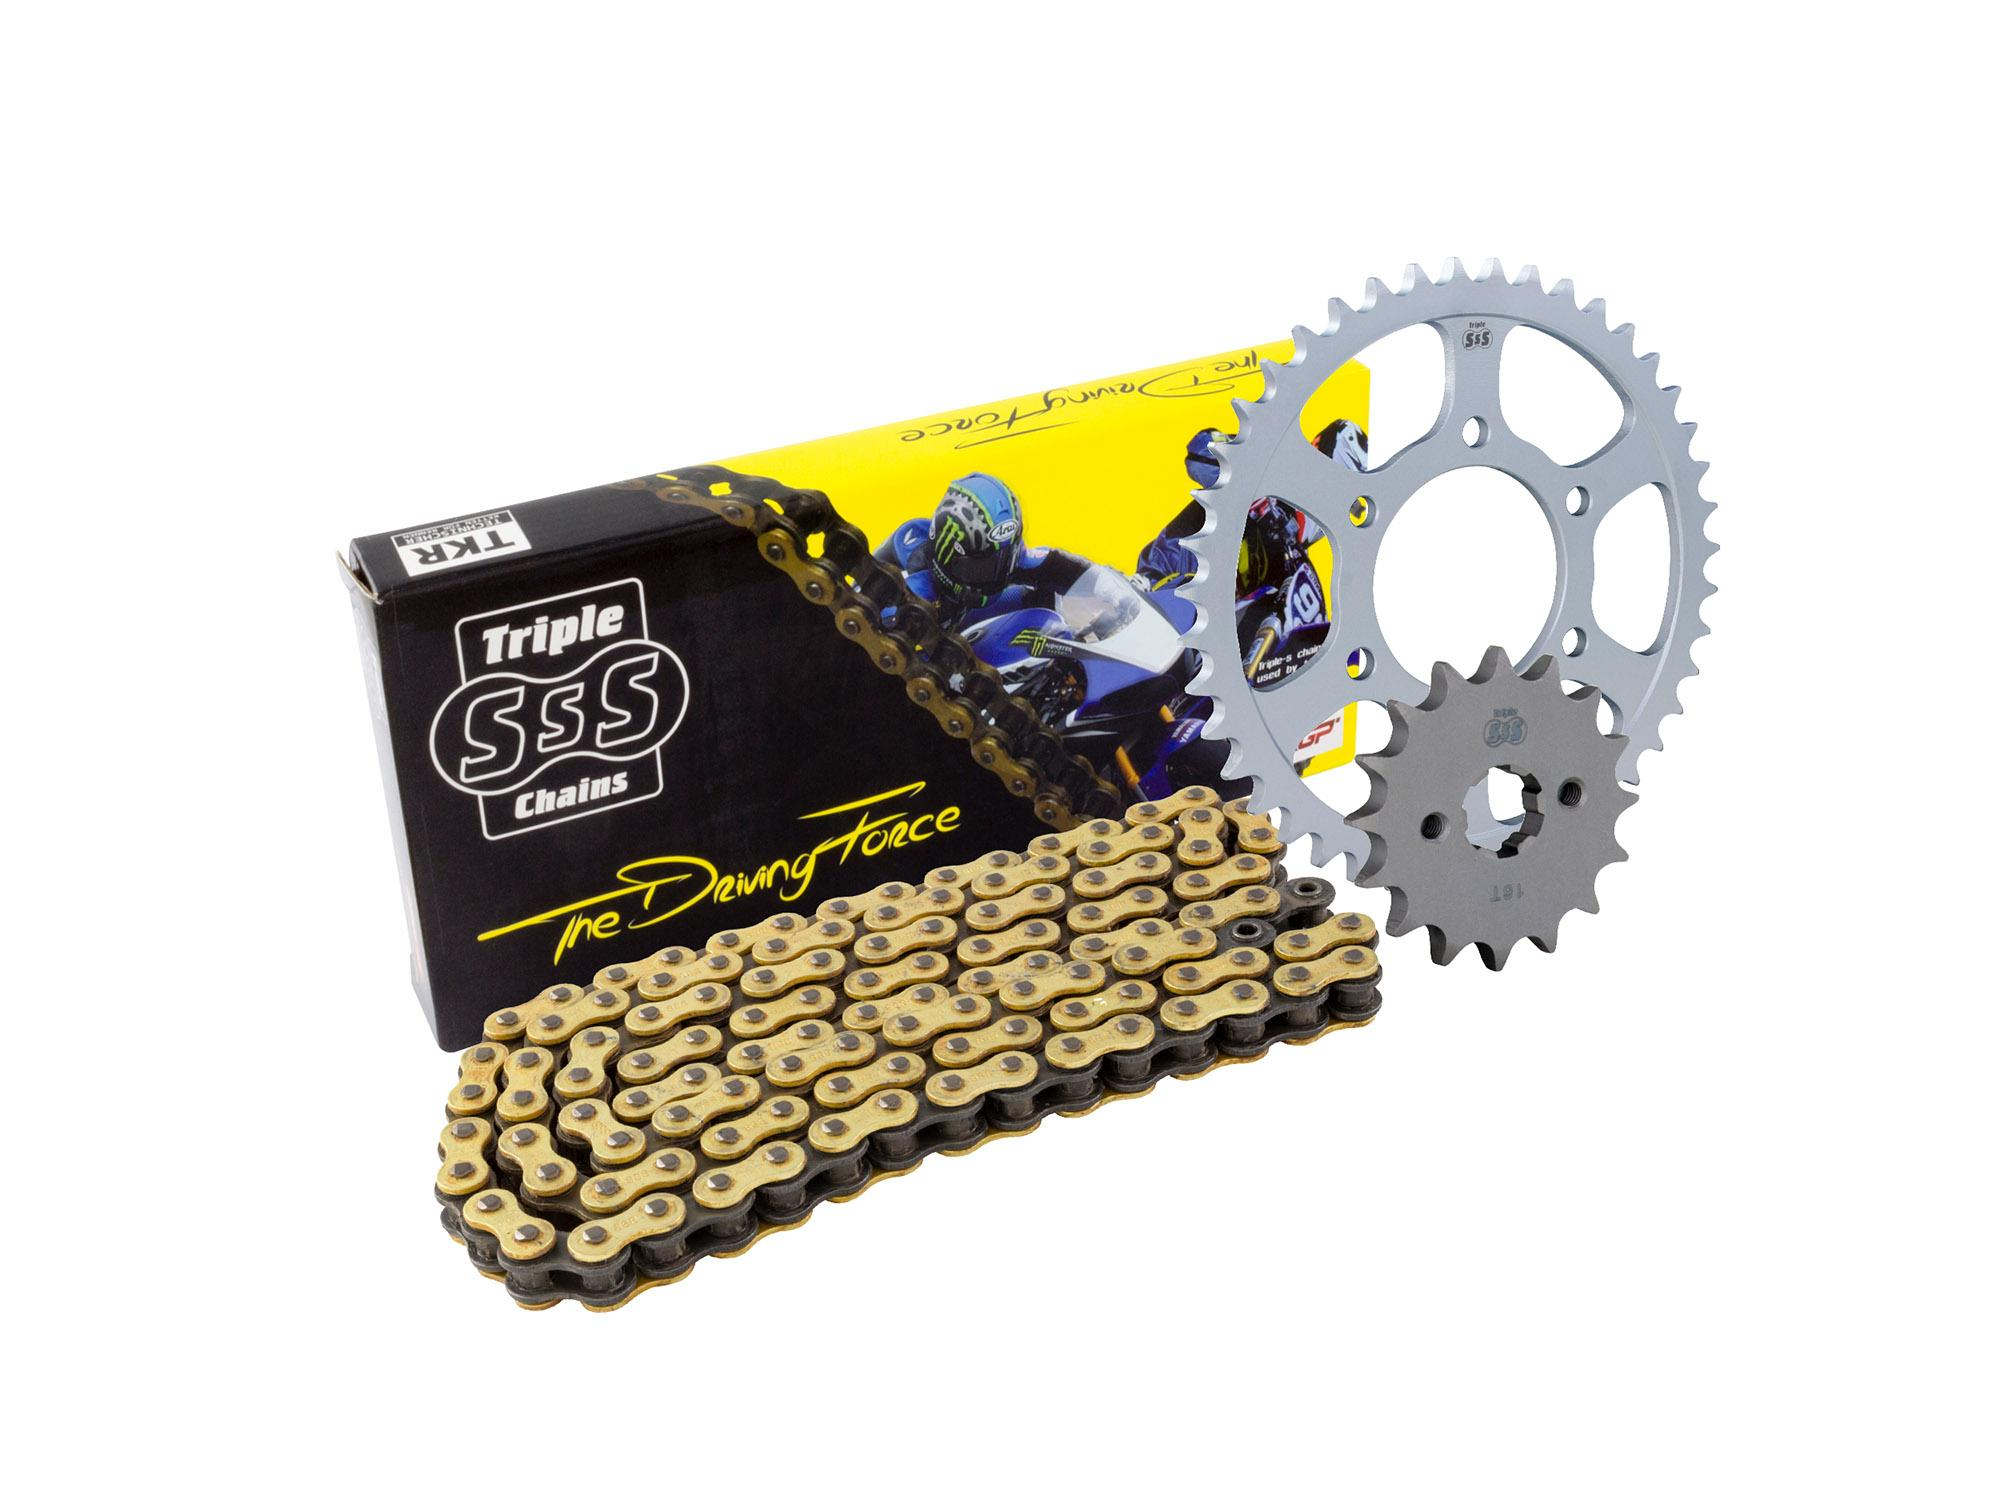 Yamaha MT09 14-16, XSR900 16 Chain & Sprocket Kit: 16T Front, 45T Rear, HD O-Ring Gold Chain 525H 110 Link